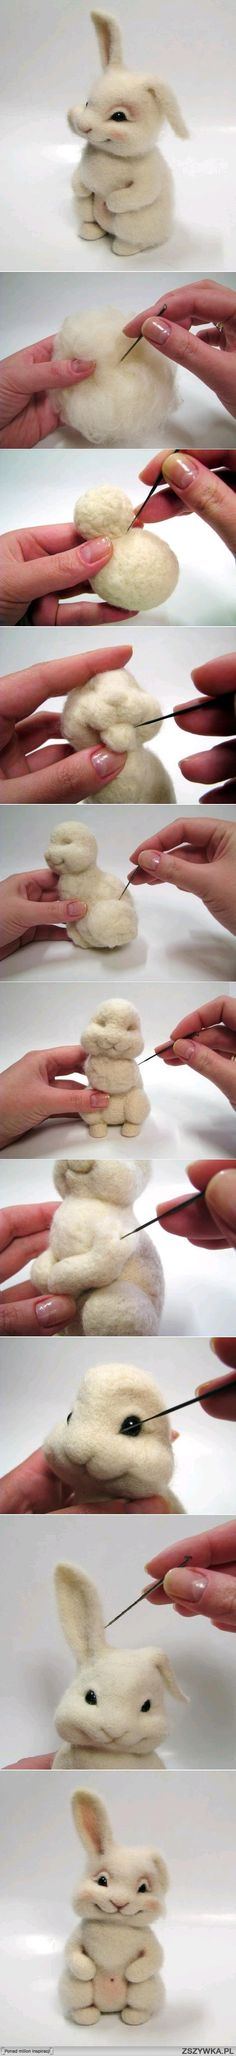 needle felting how-to